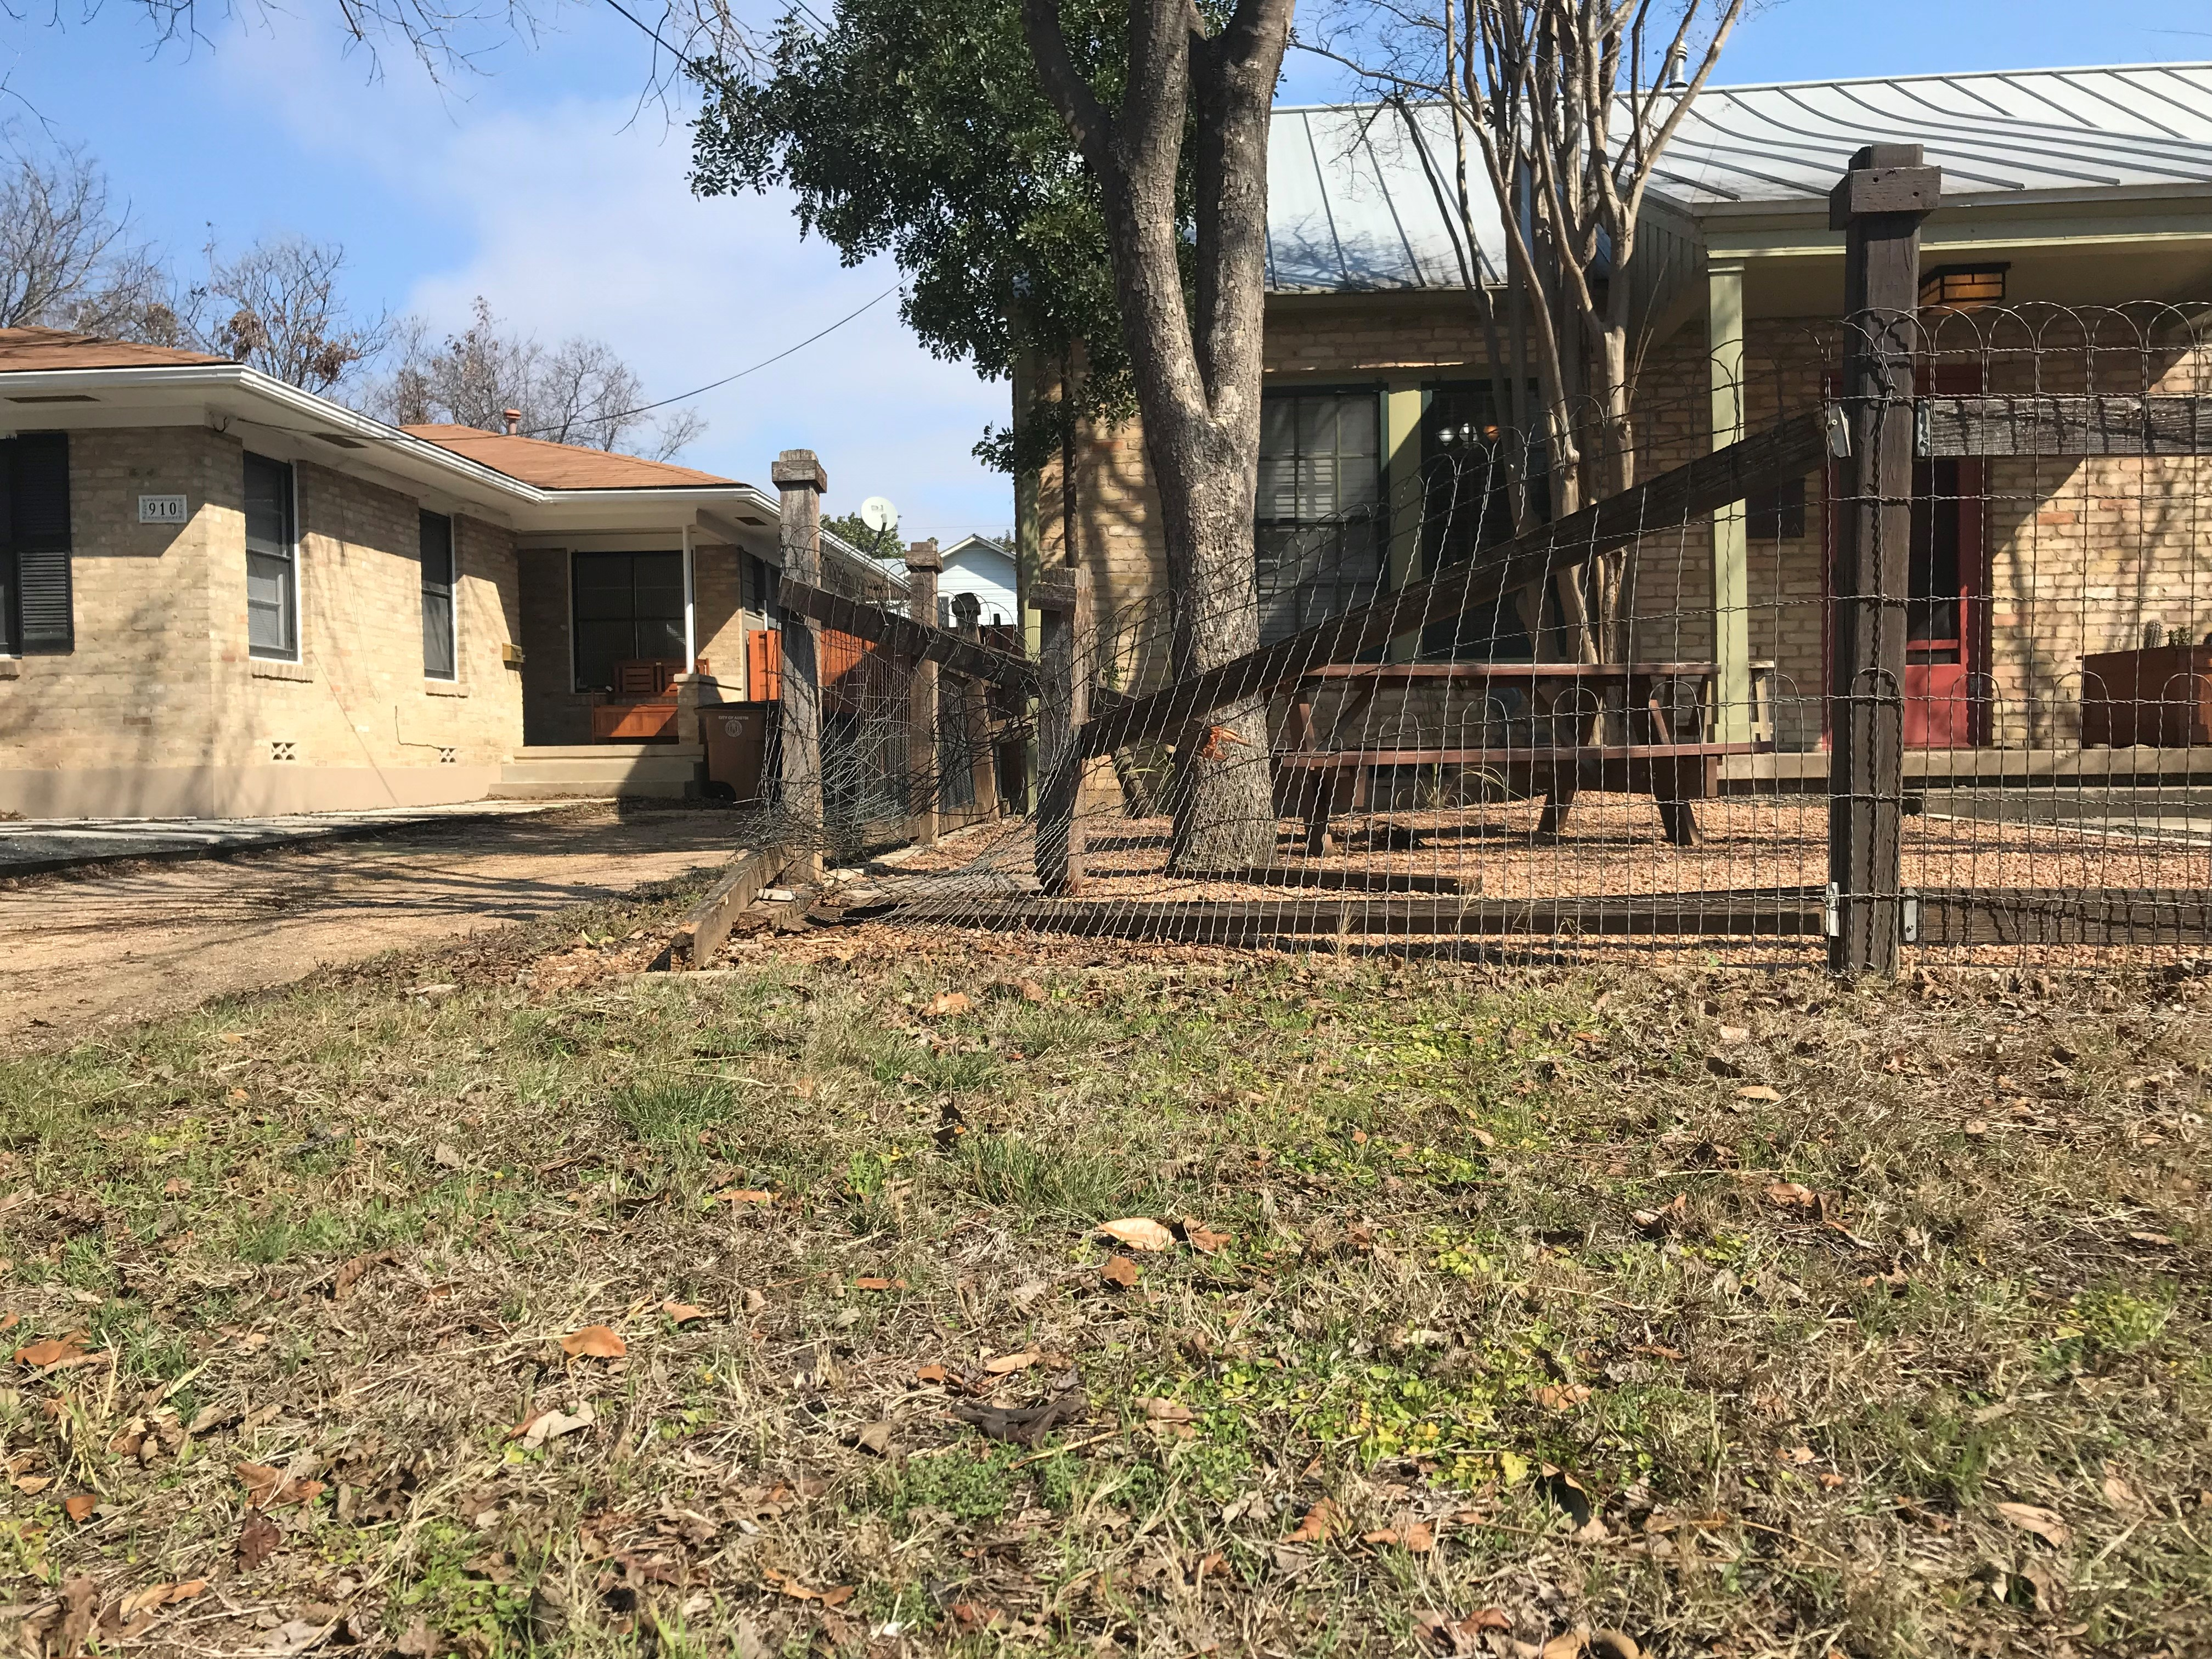 A homeowner's fence that was damaged when police say Olivia Gruwell ran into it on Feb. 9, 2018. (KXAN Photo/Yoojin Cho)